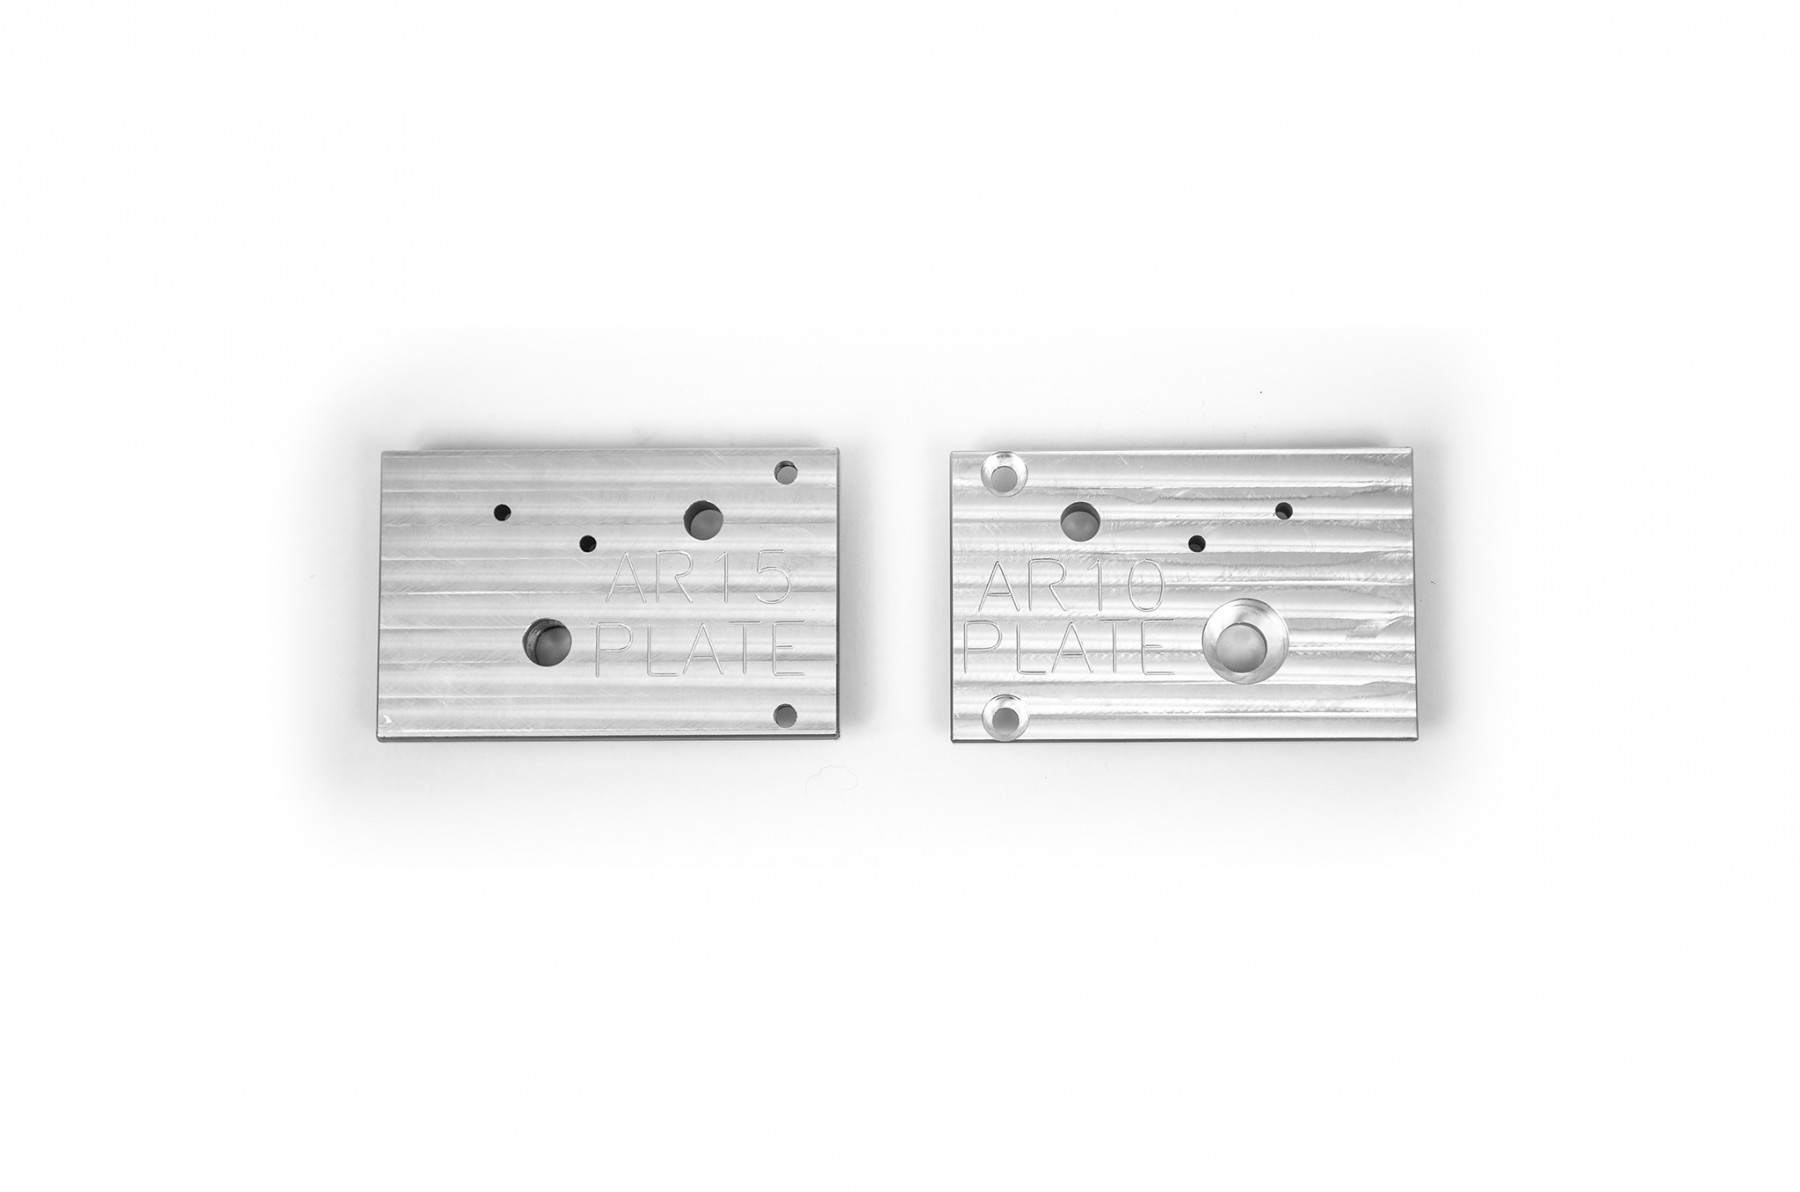 Universal Jig Replacement Plates